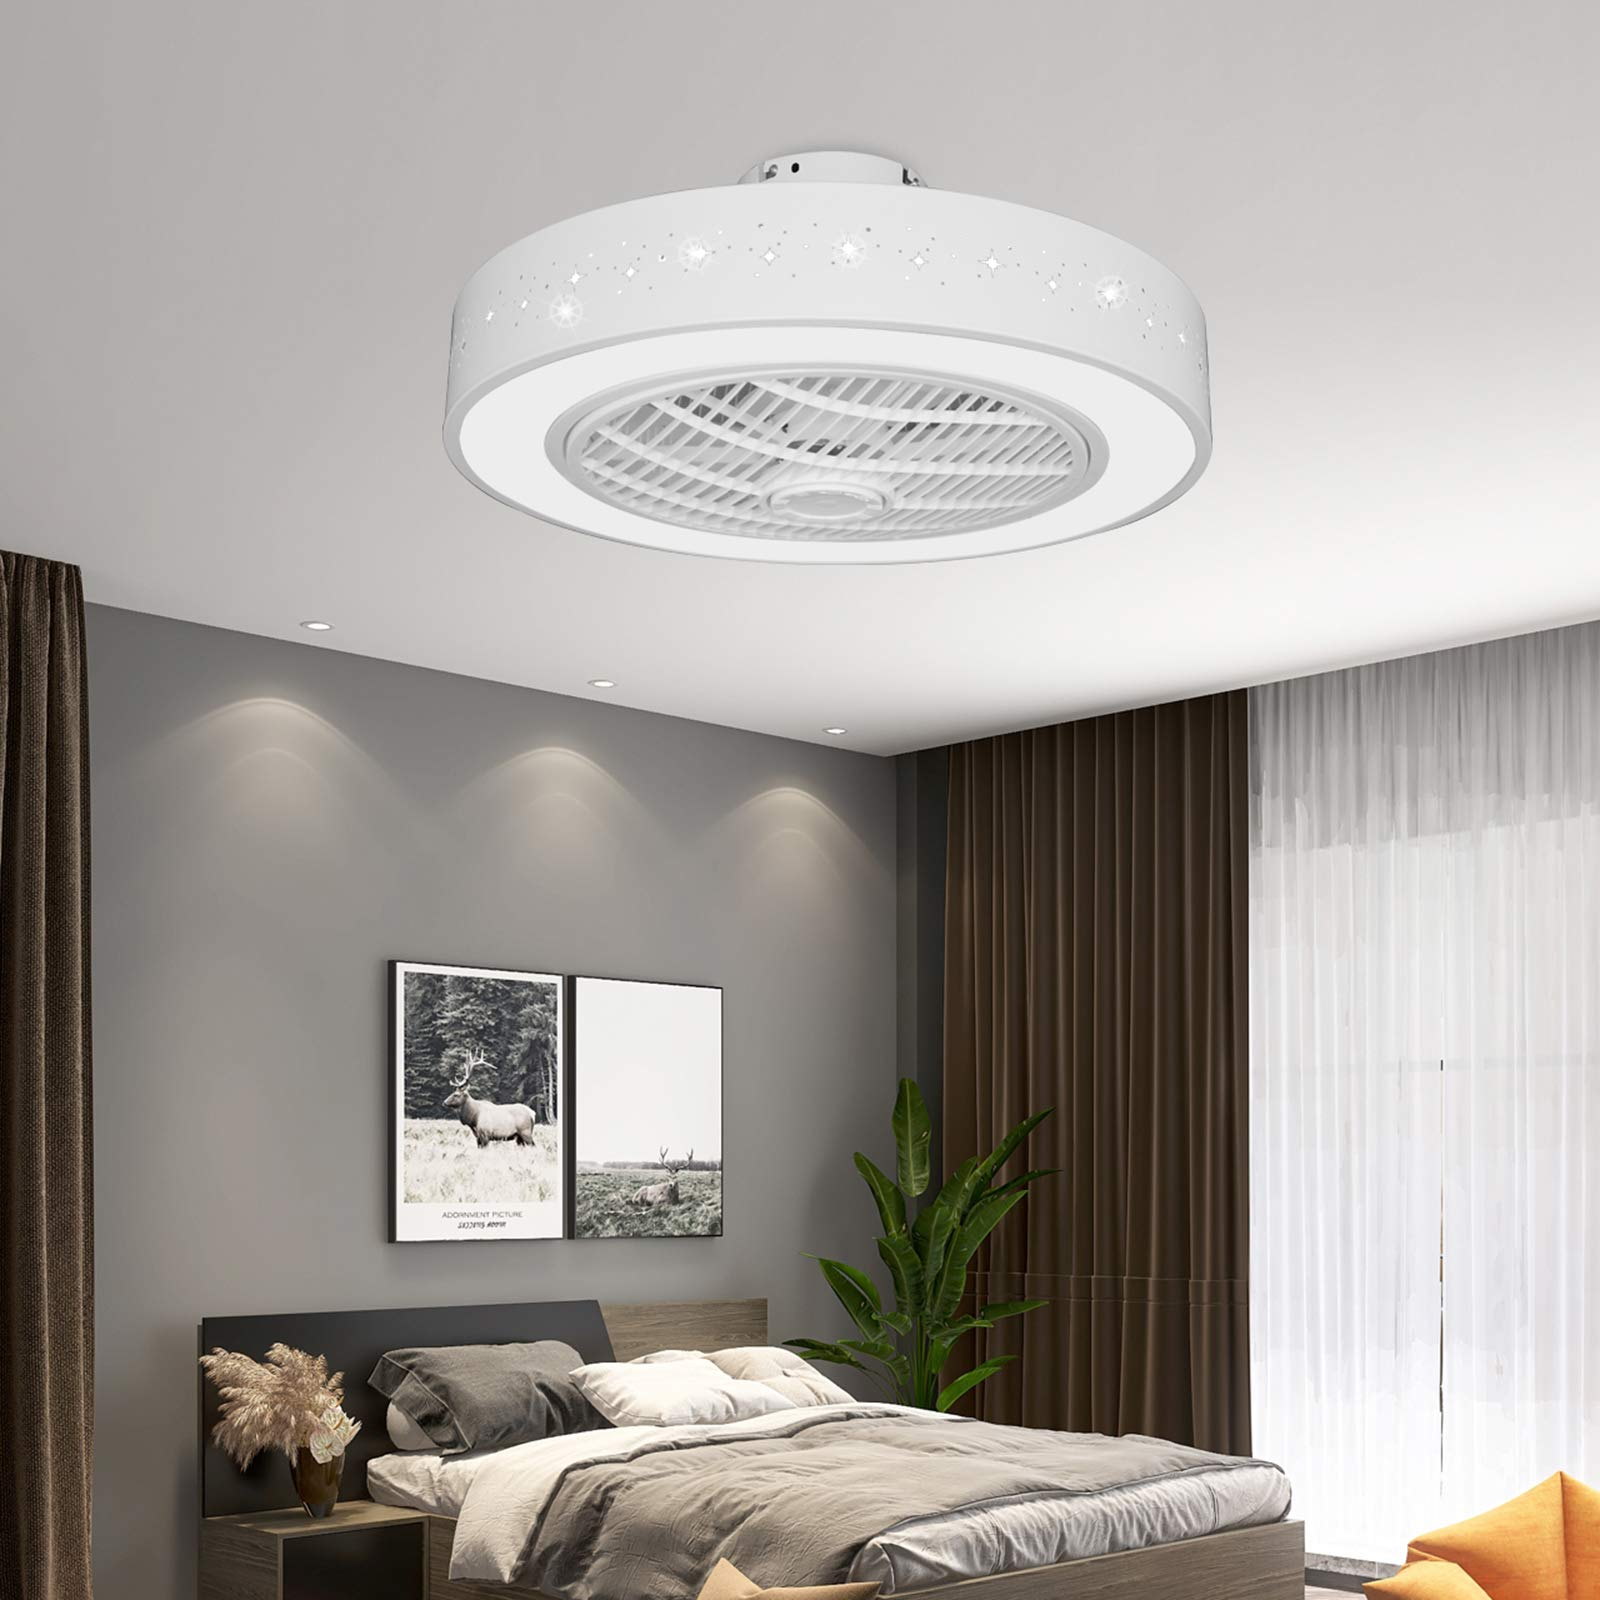 """TFCFL Invisible Ceiling Fan with Light, 22"""" Round Semi Flush Mount Low Profile Fan Chandelier with Remote Control 3 Colors 3 Speeds Acrylic Openwork Carving Hidden Blades for Bedroom (White)"""